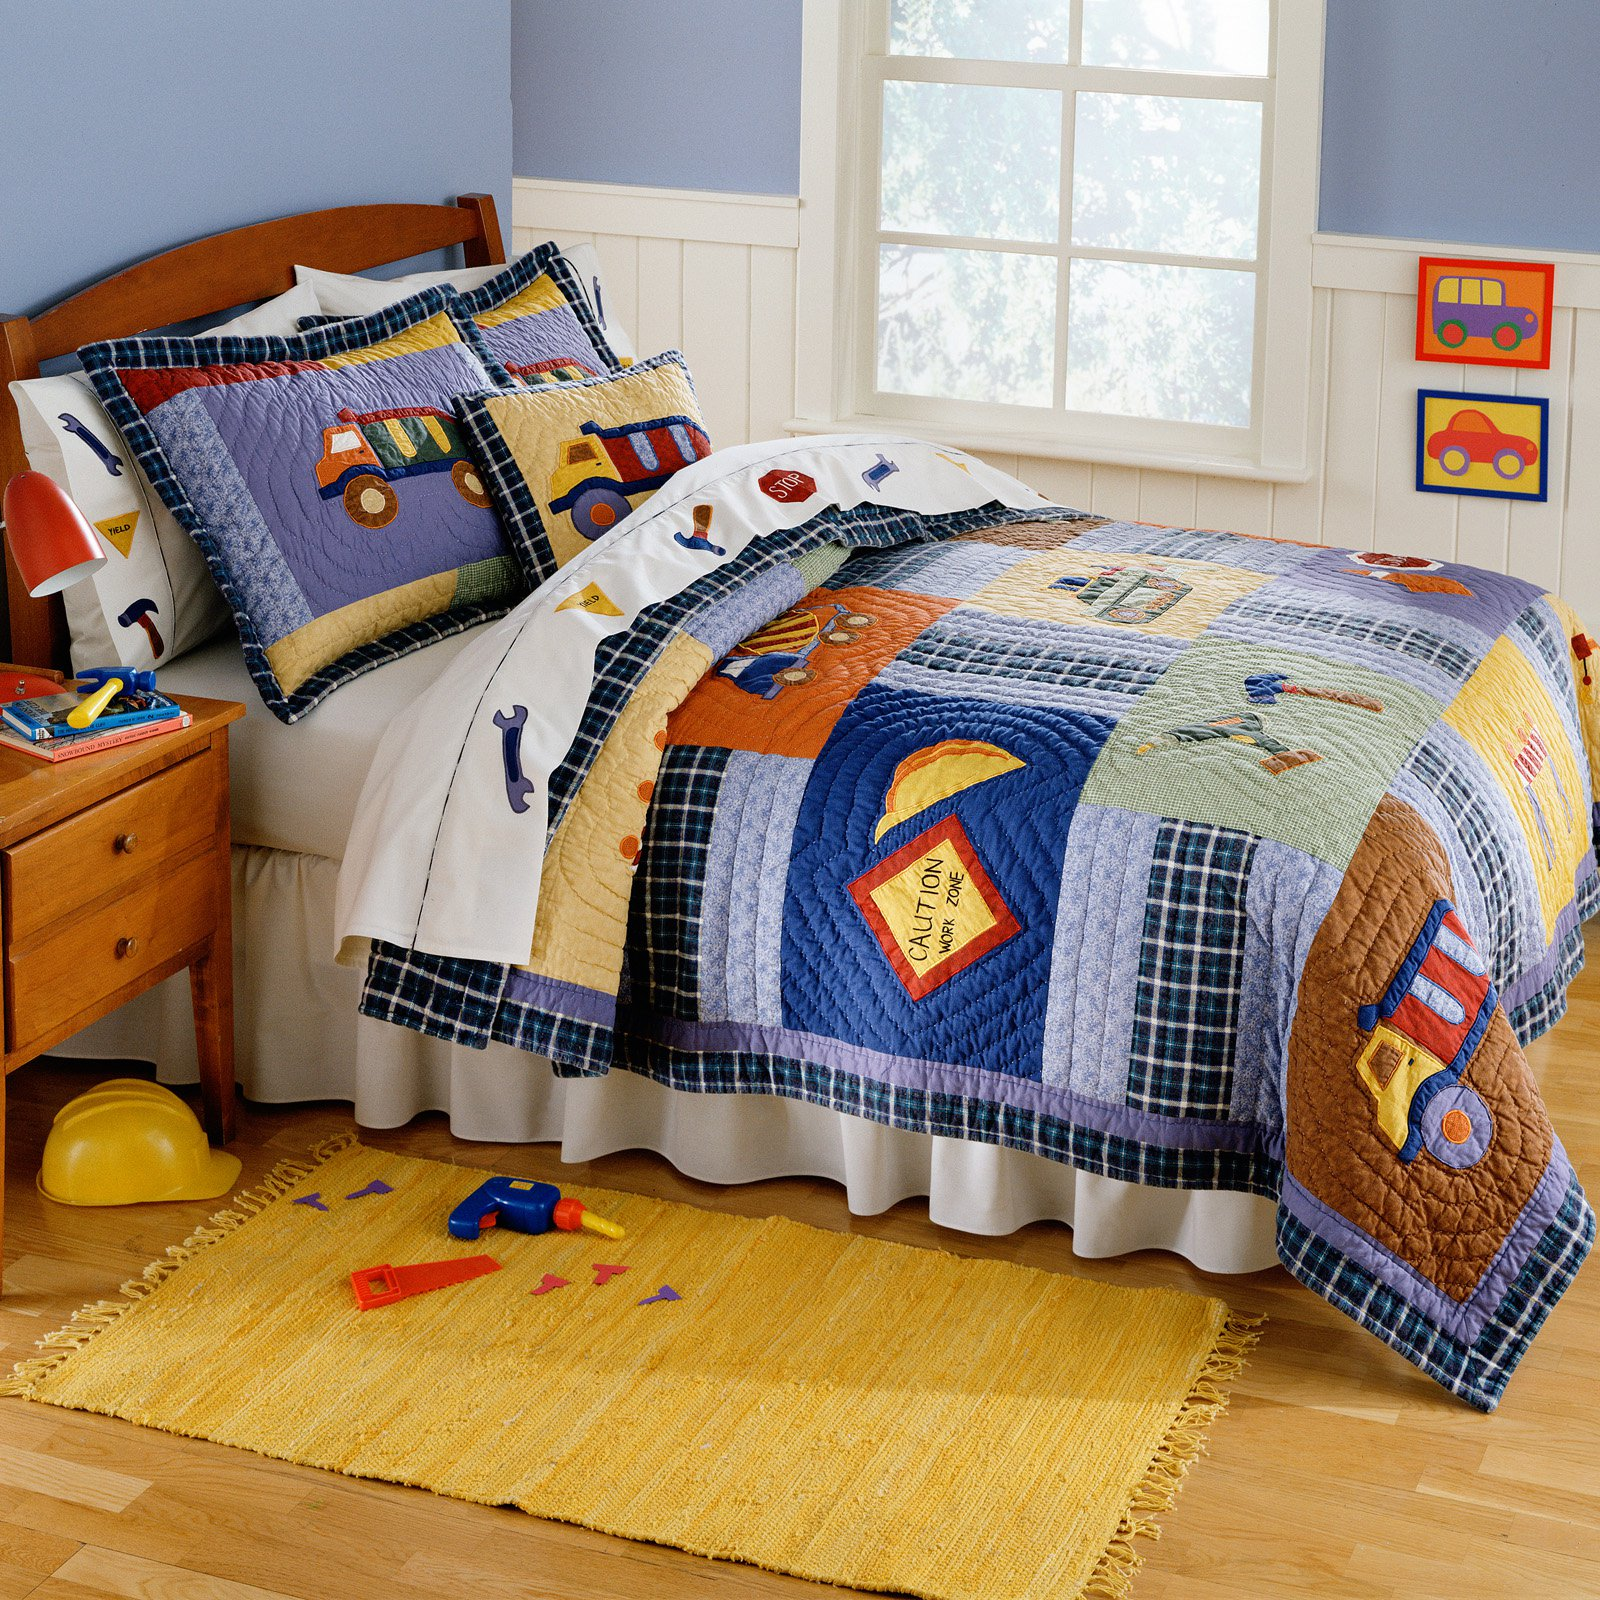 My World Construction Quilt Set